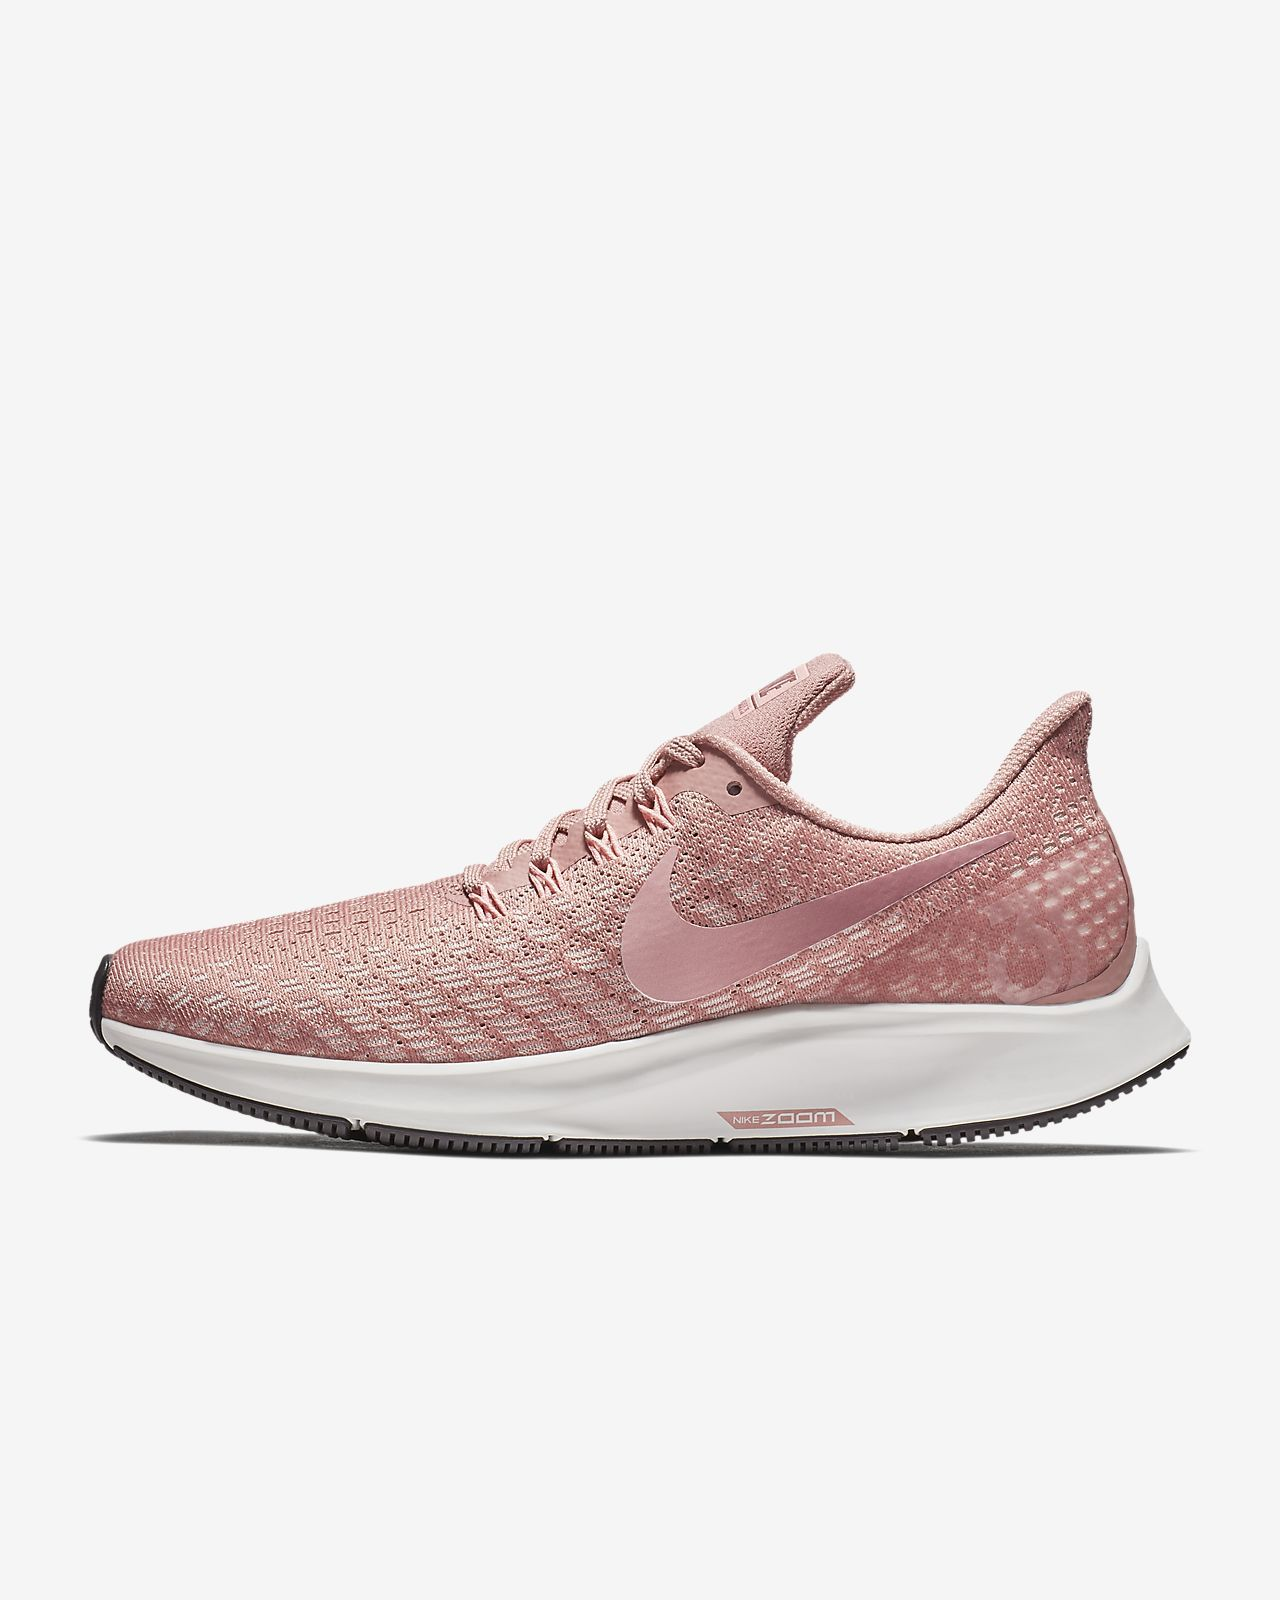 a1243bb3209 Nike Air Zoom Pegasus 35 Women s Running Shoe